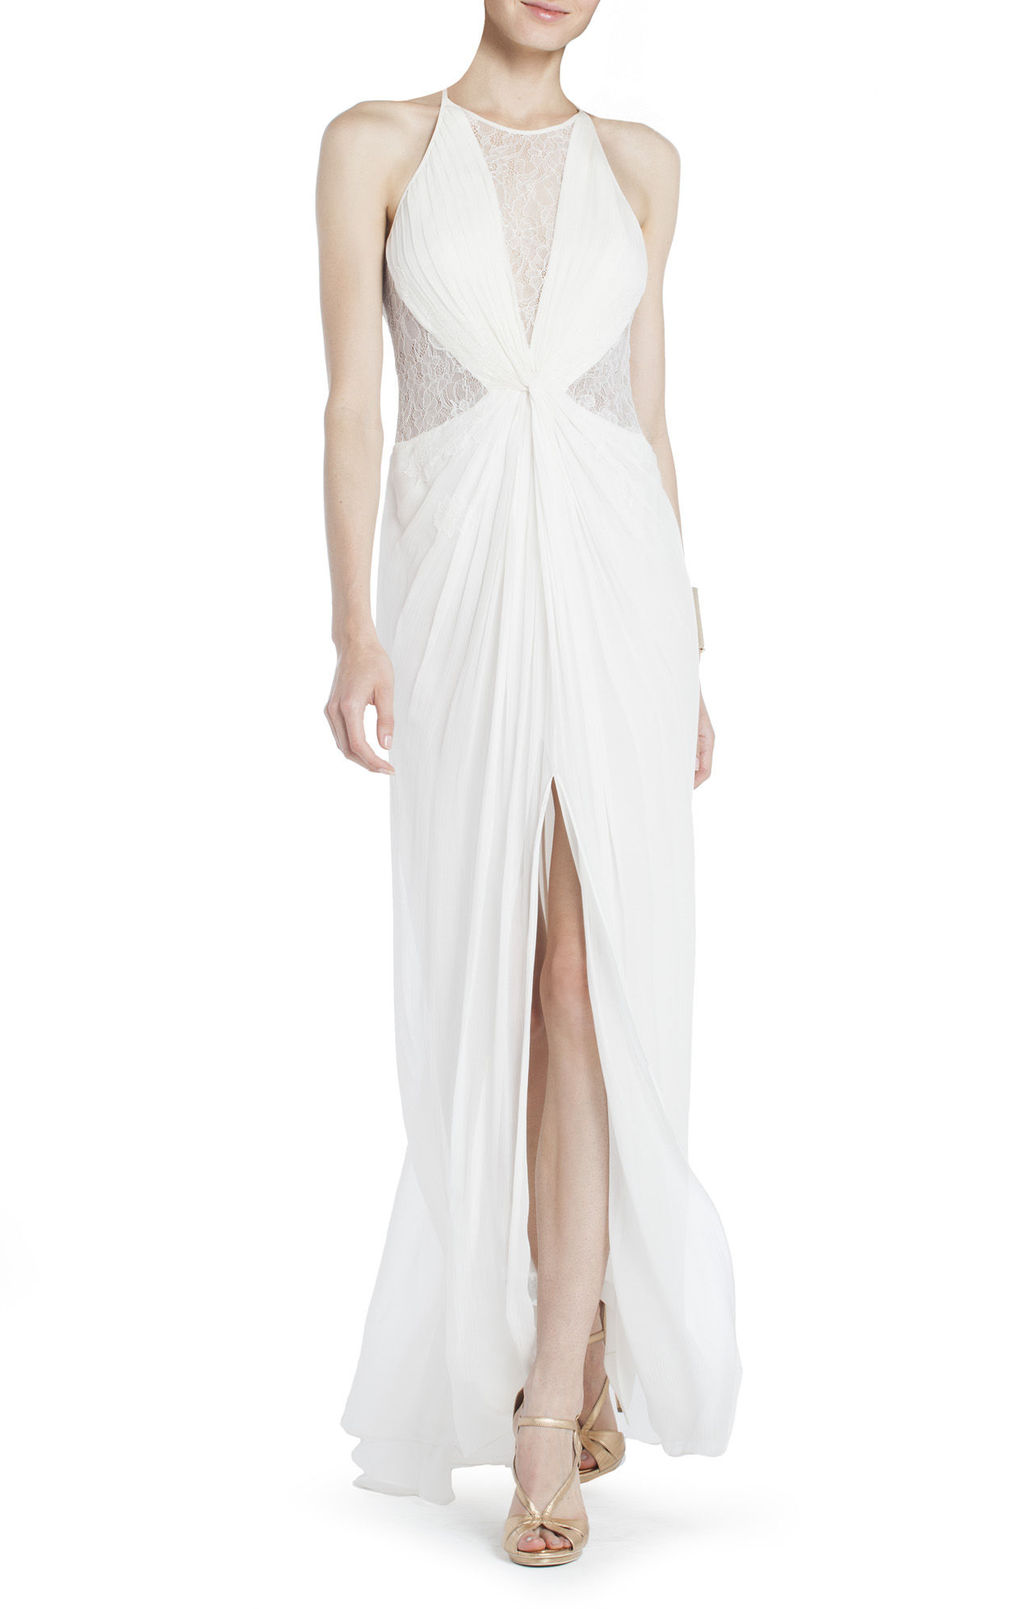 BCBG wedding dress Max Azria Bridal Maxine